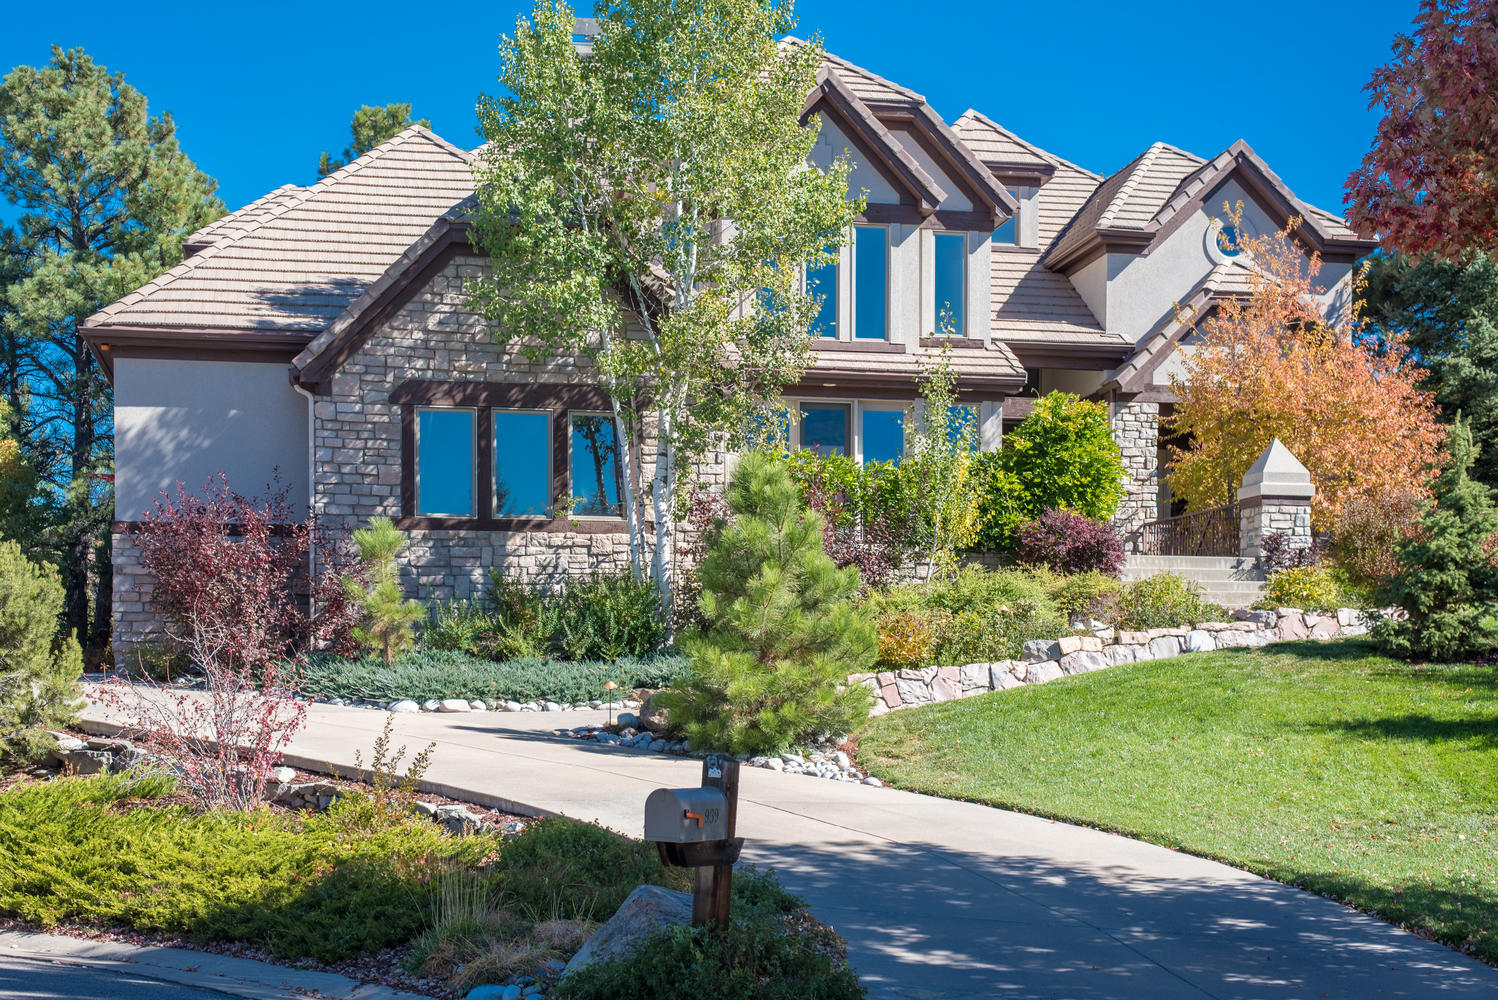 Single Family Home for Sale at Castle Pines Village 939 Aztec Dr Castle Pines Village, Castle Rock, Colorado, 80108 United States